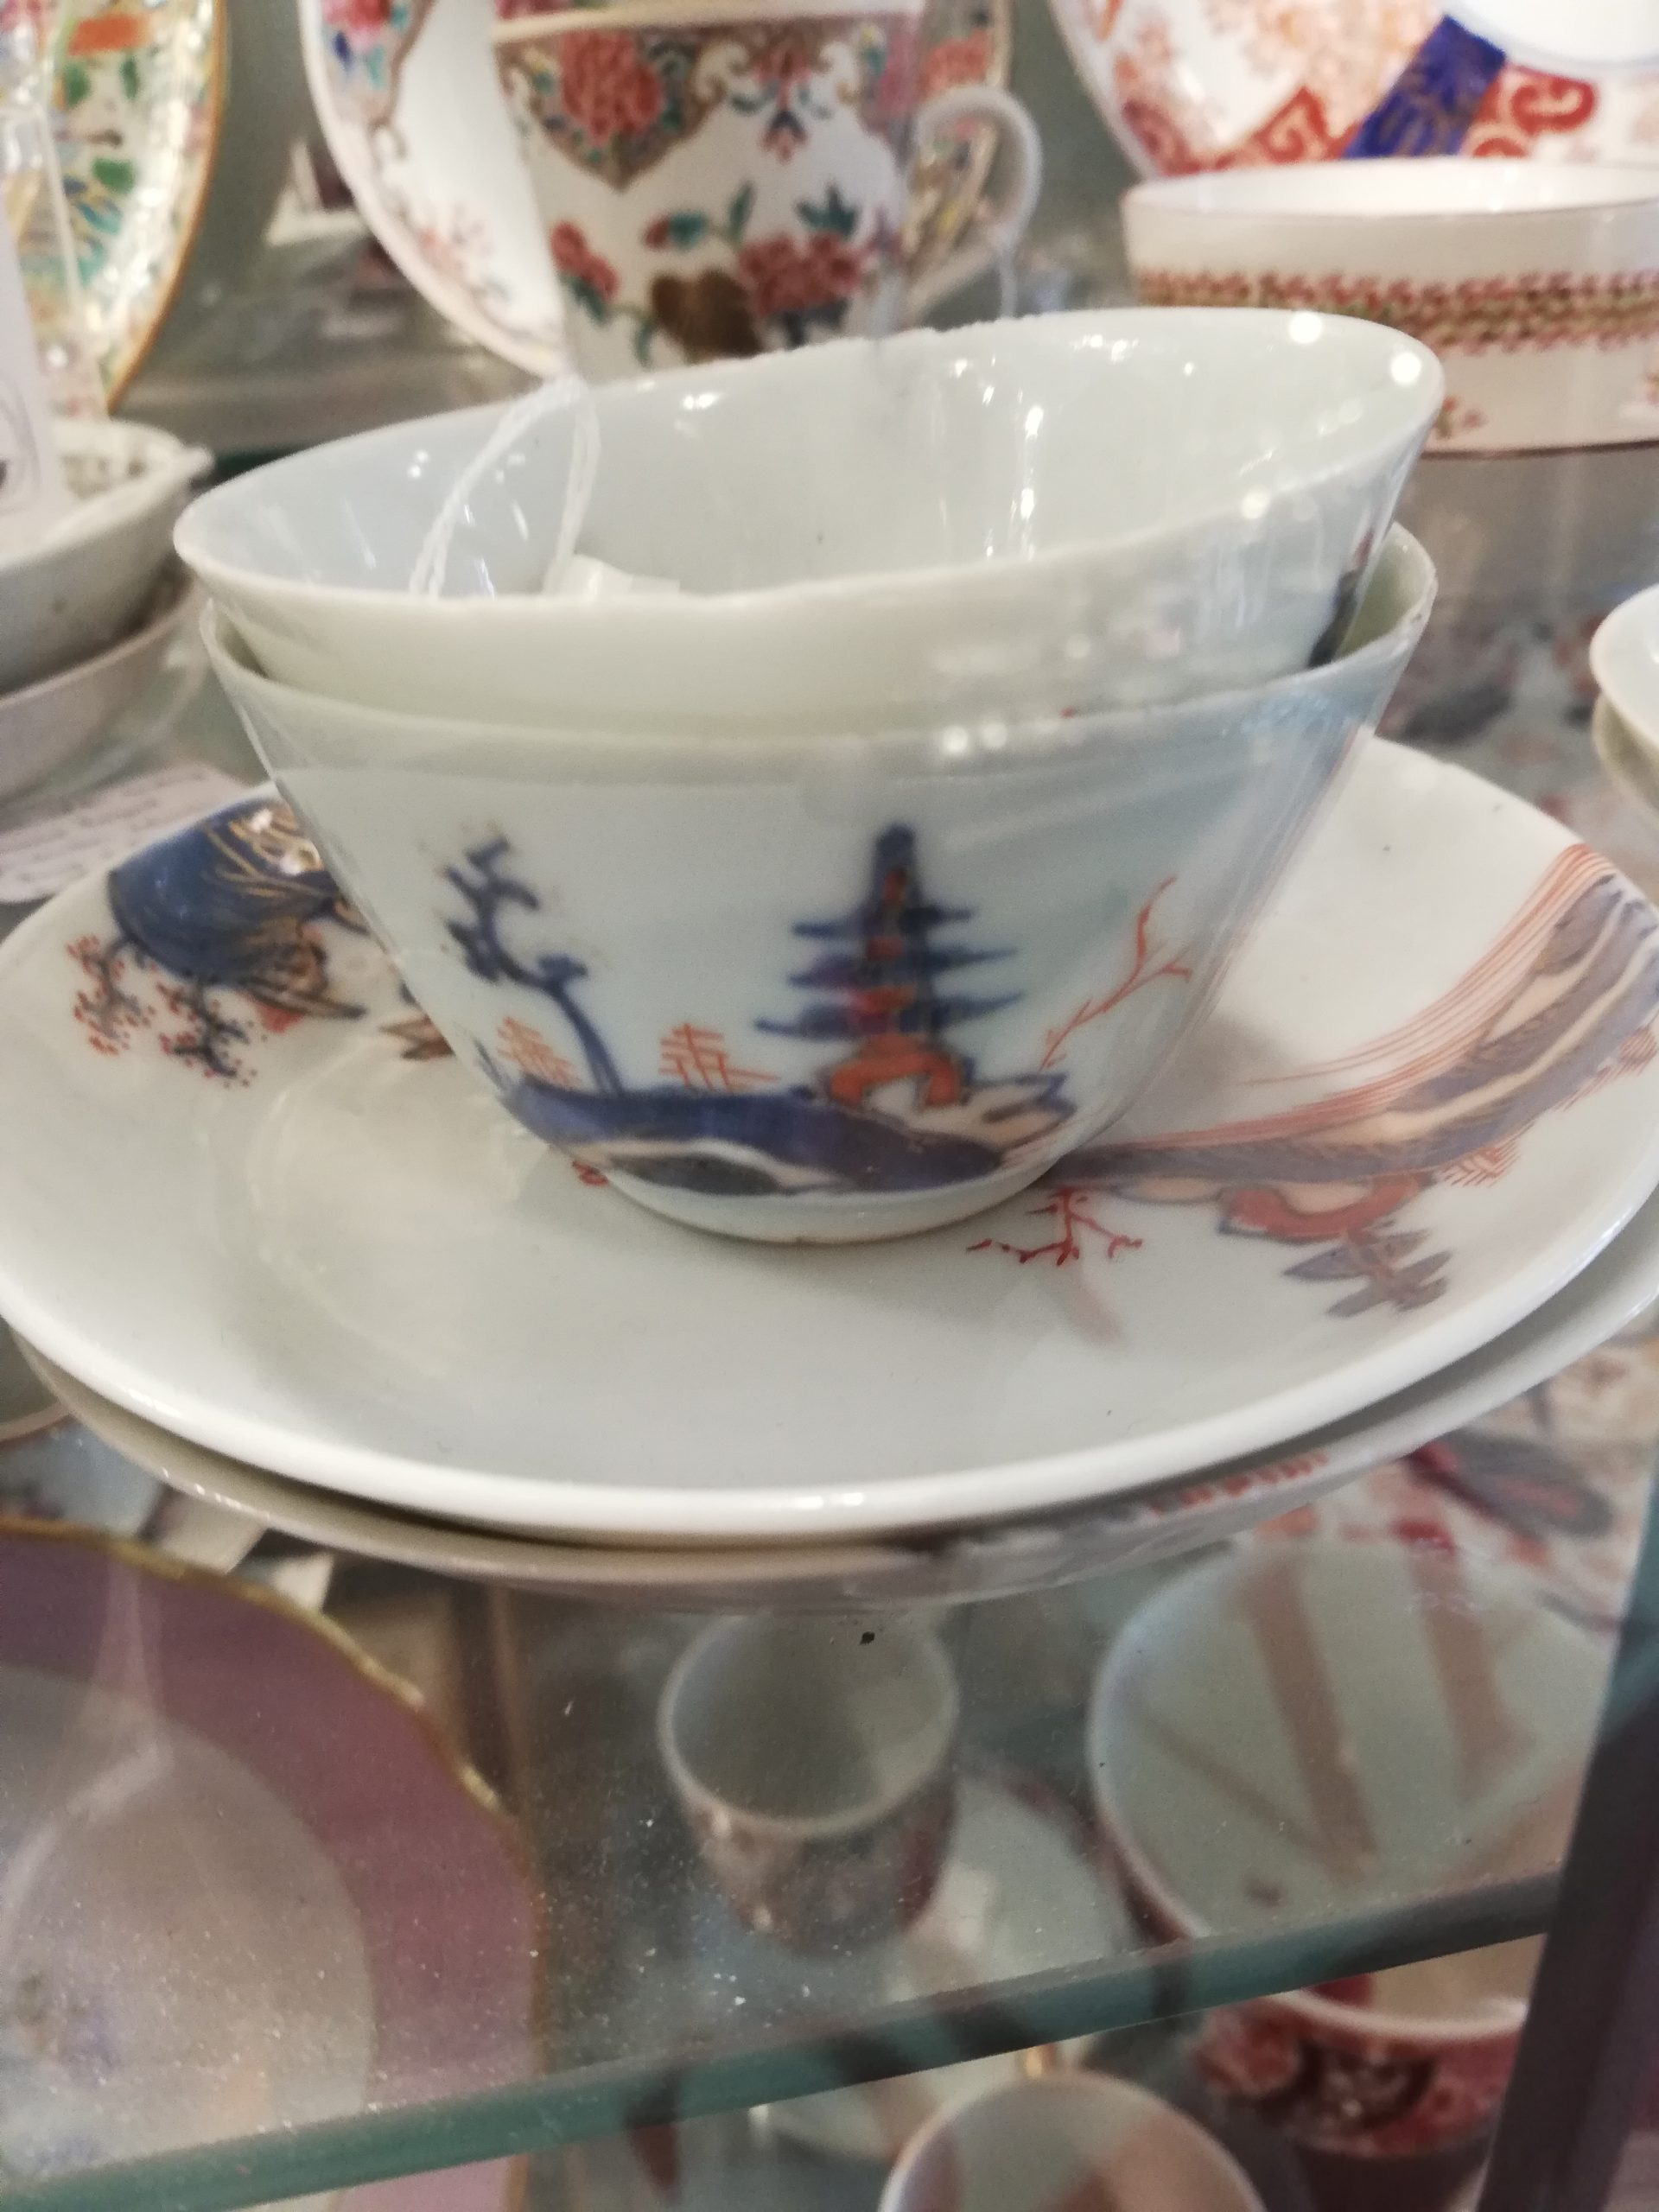 Coffee Cups from the 1700s have no handle